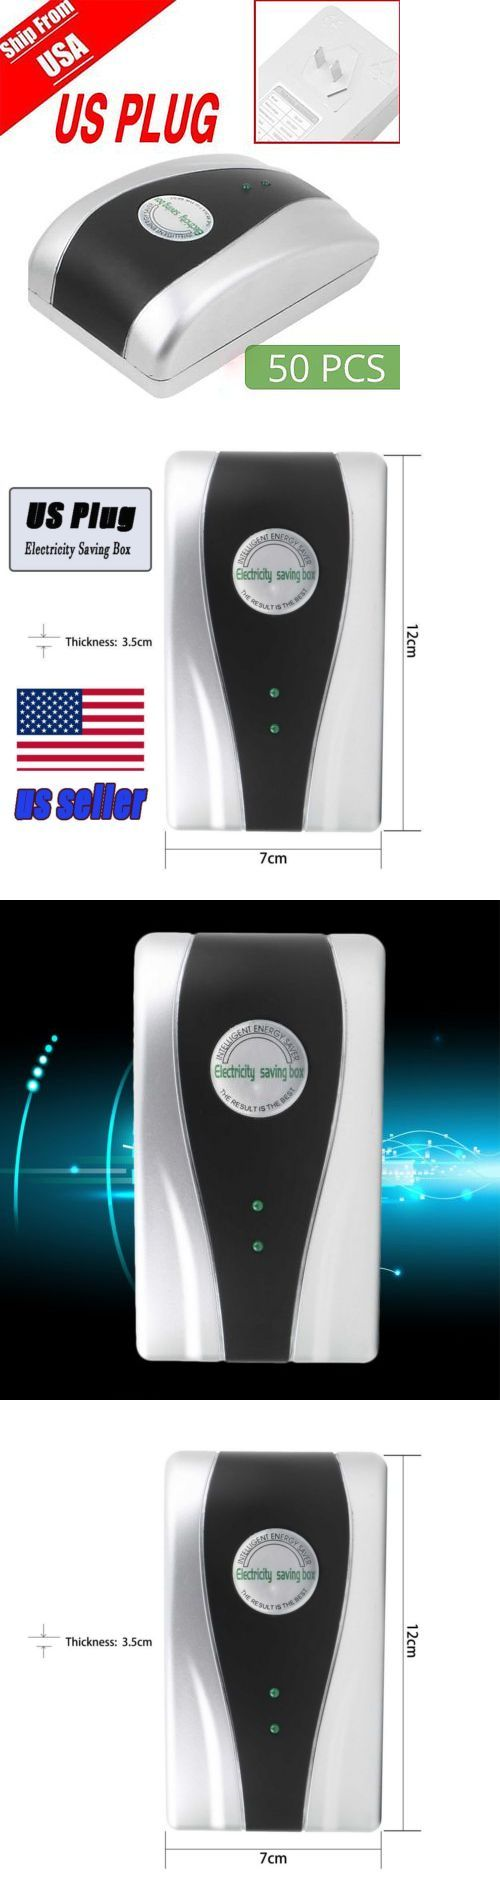 Other Alt and Solar Energy 3240: 50X Power Electricity Save Saving Energy Saver Box Save 30% 15Kw Us Plug Lot Aw -> BUY IT NOW ONLY: $113.64 on eBay!